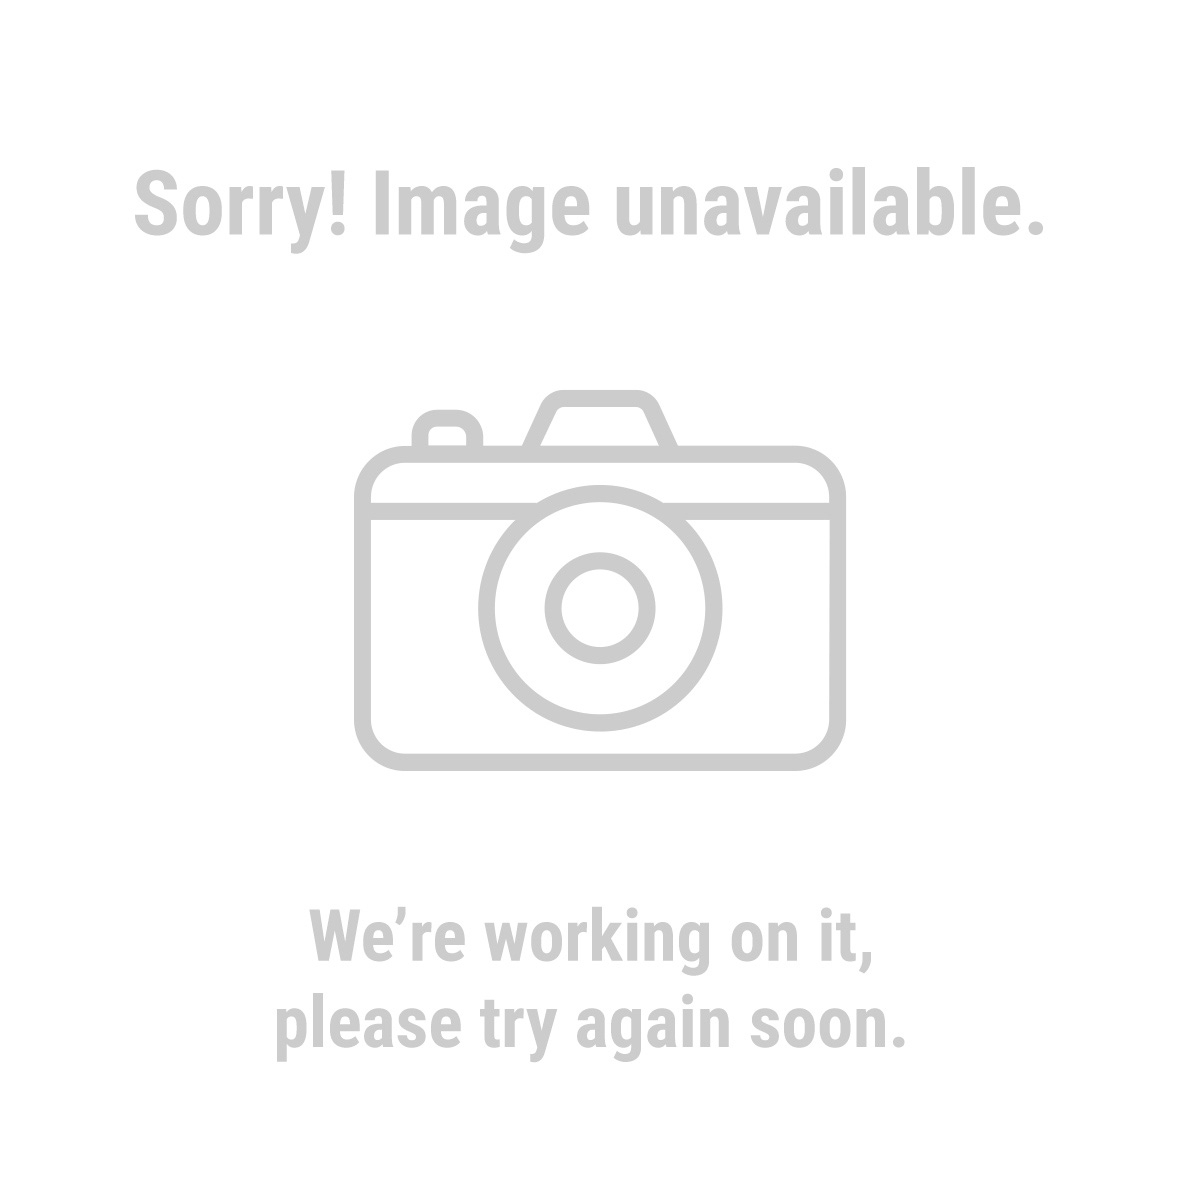 Badland® 62278 9000 lb. Off-Road Vehicle Electric Winch with Automatic Load-Holding Brake